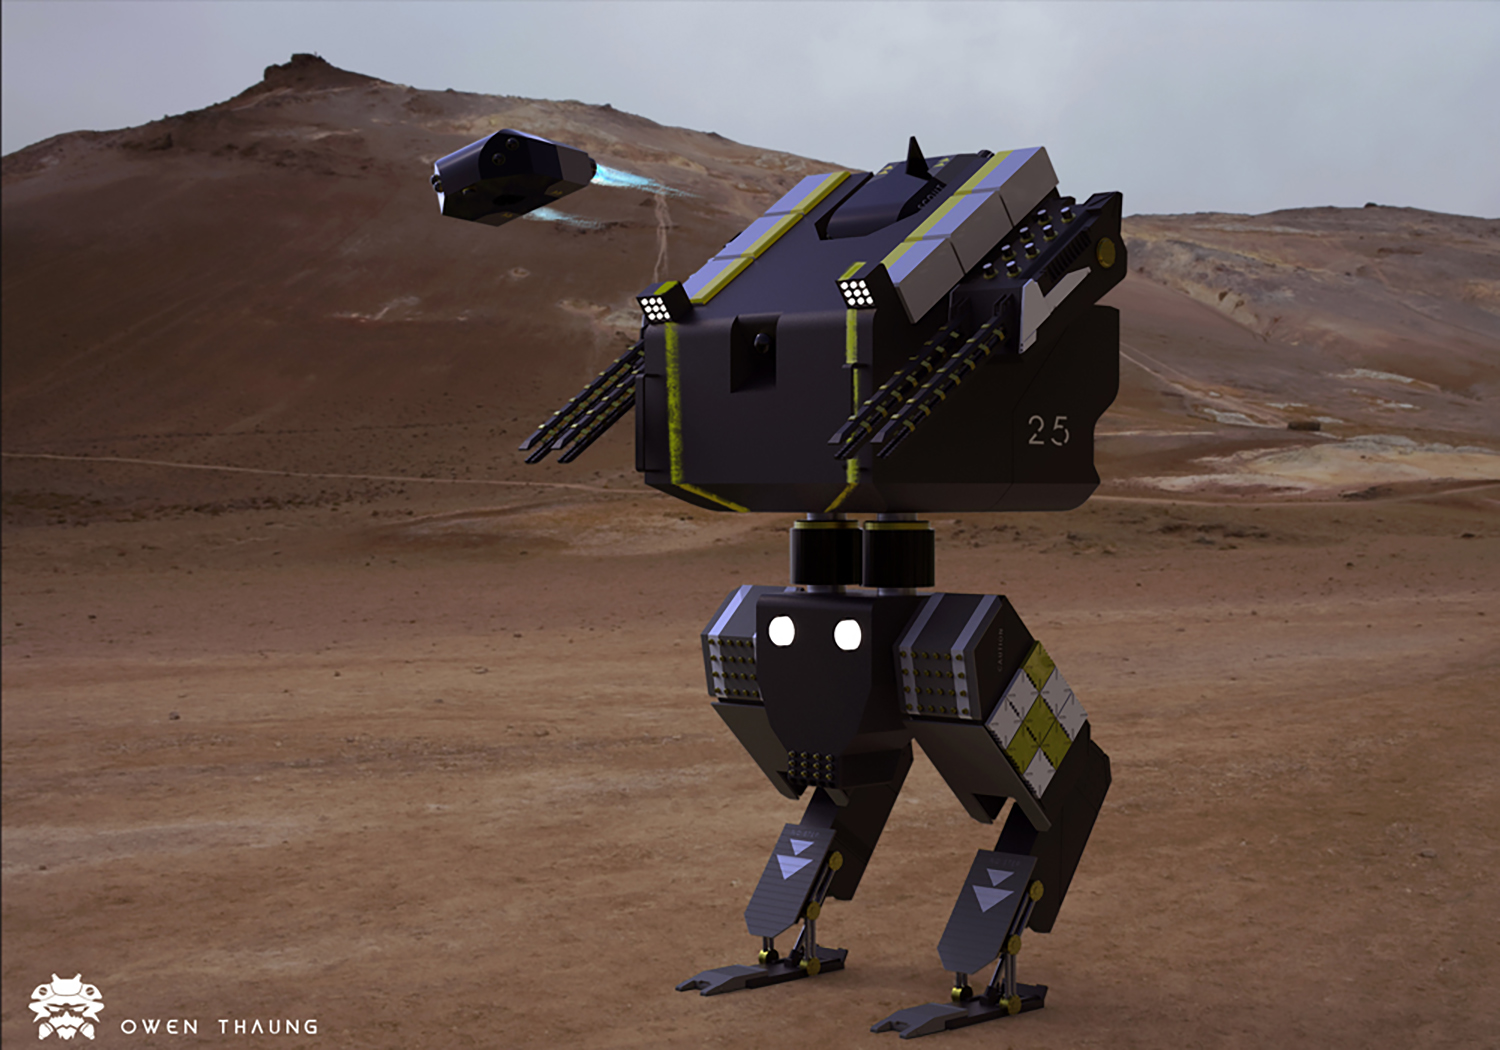 Military mech equipped with particle guns. It is equipped with a drone to scout the area